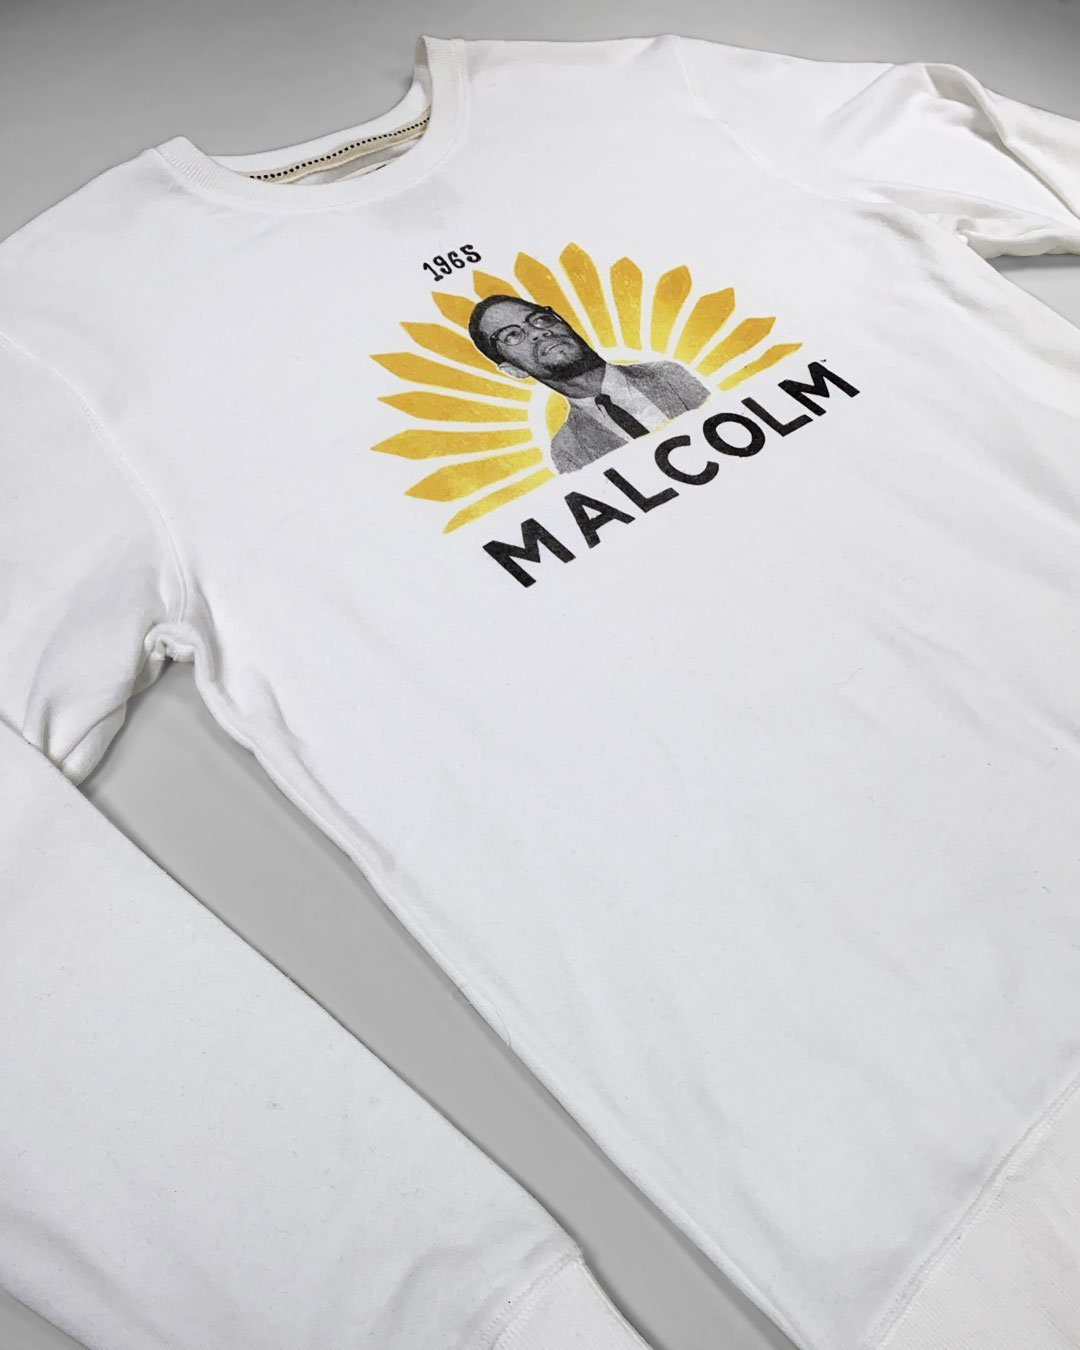 BHT - Malcolm X 1965 Sweatshirt - Roots of Inc dba Roots of Fight